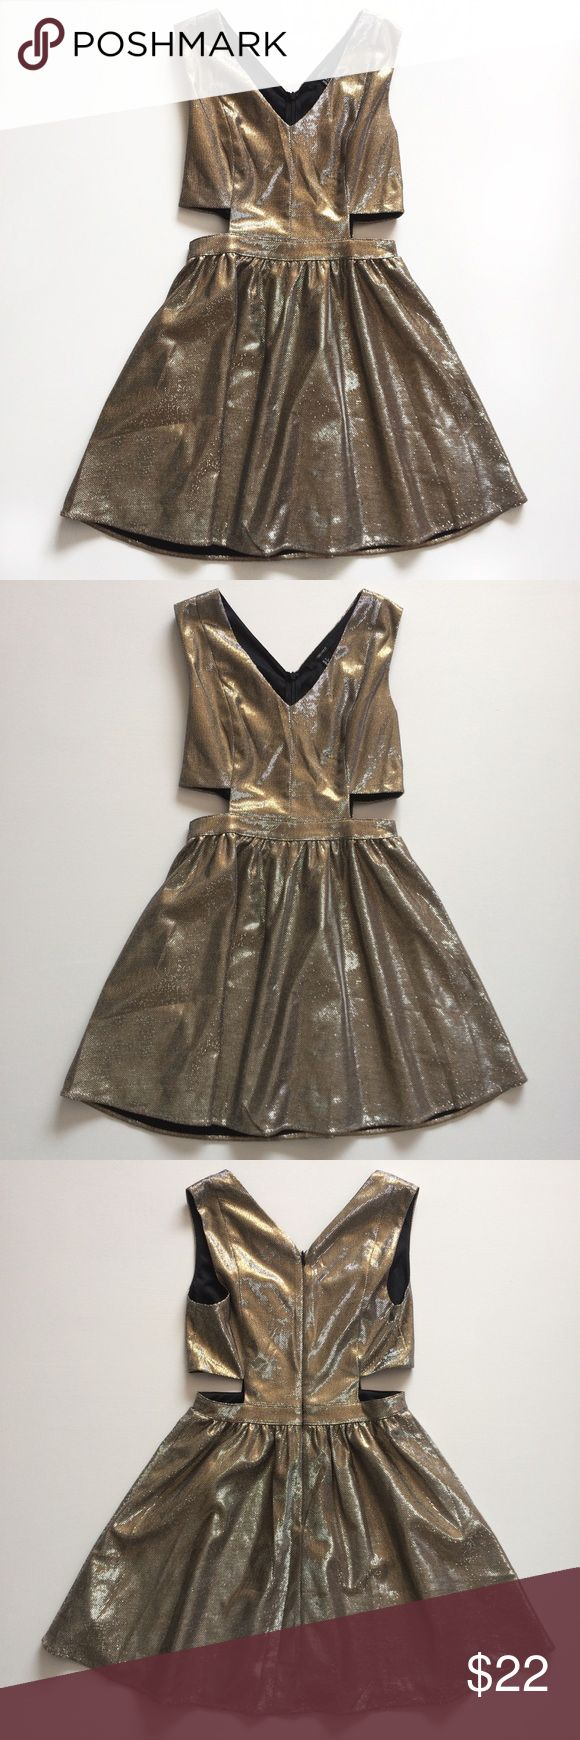 NWOT Forever 21 Metallic Side Cut Out Dress Condition: Only Tried On Size: Small Materials: polyester and metallic yarn Style Recommendation: This is such an adorable gold/silver metallic blend dress with black pumps and accessories for a night out or special event!💕 Forever 21 Dresses